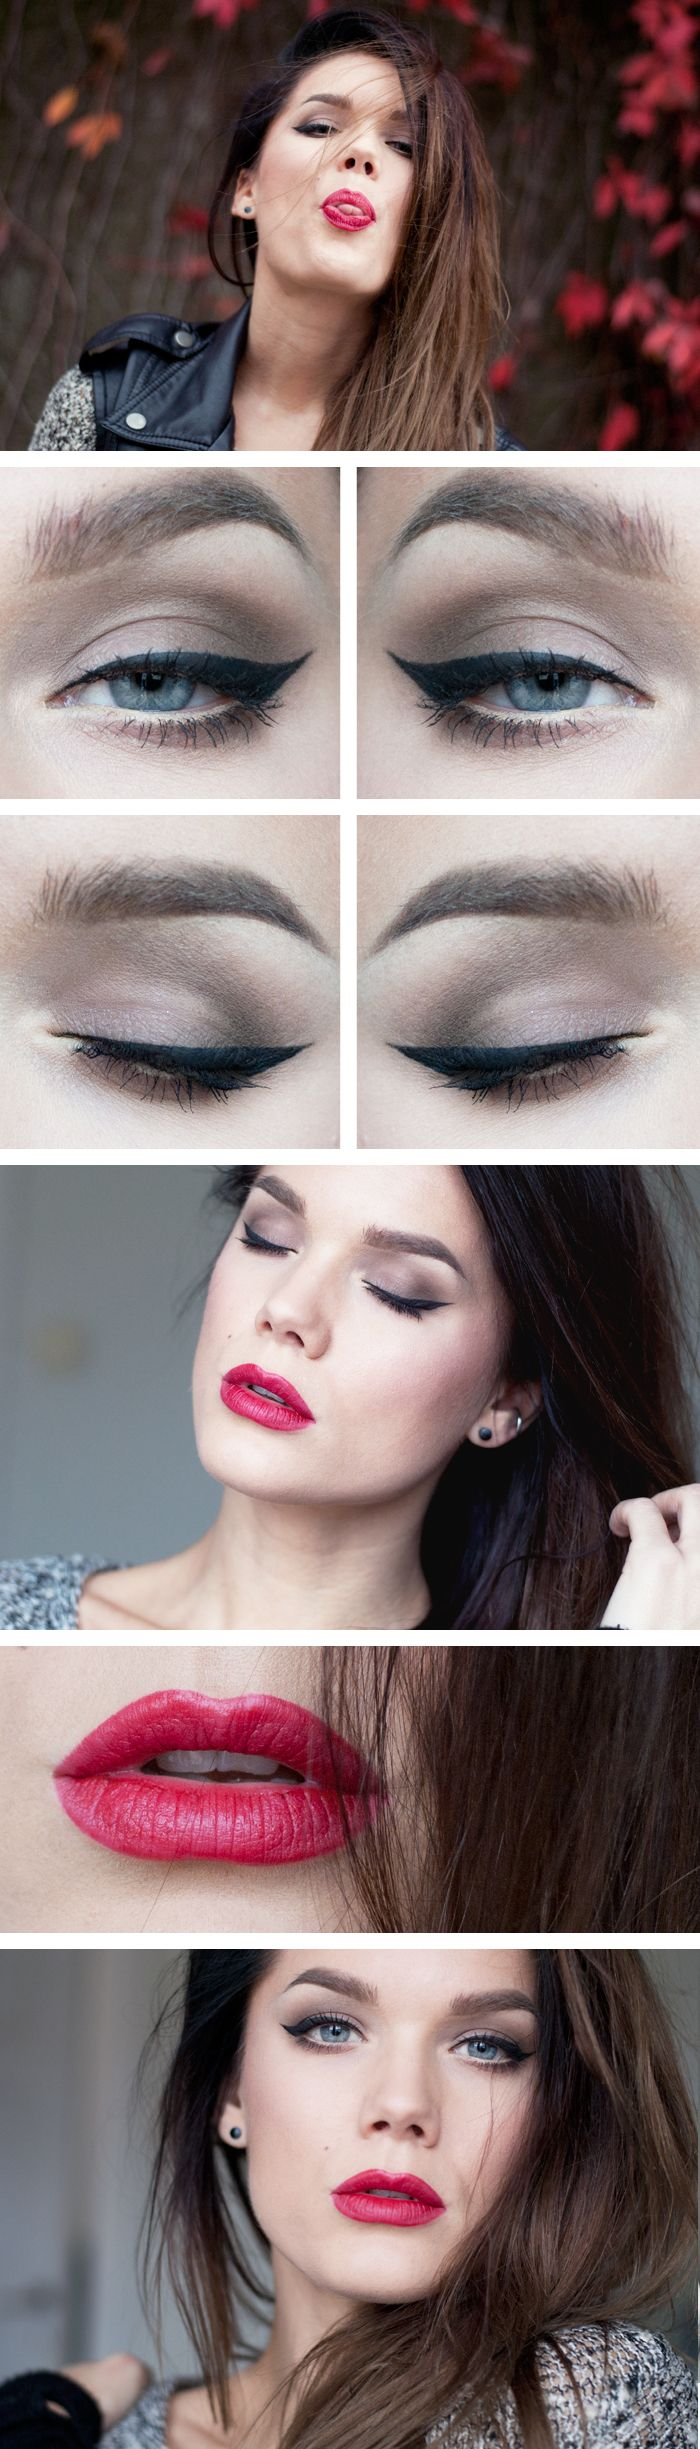 best fall makeup fashion and decor images on pinterest fall